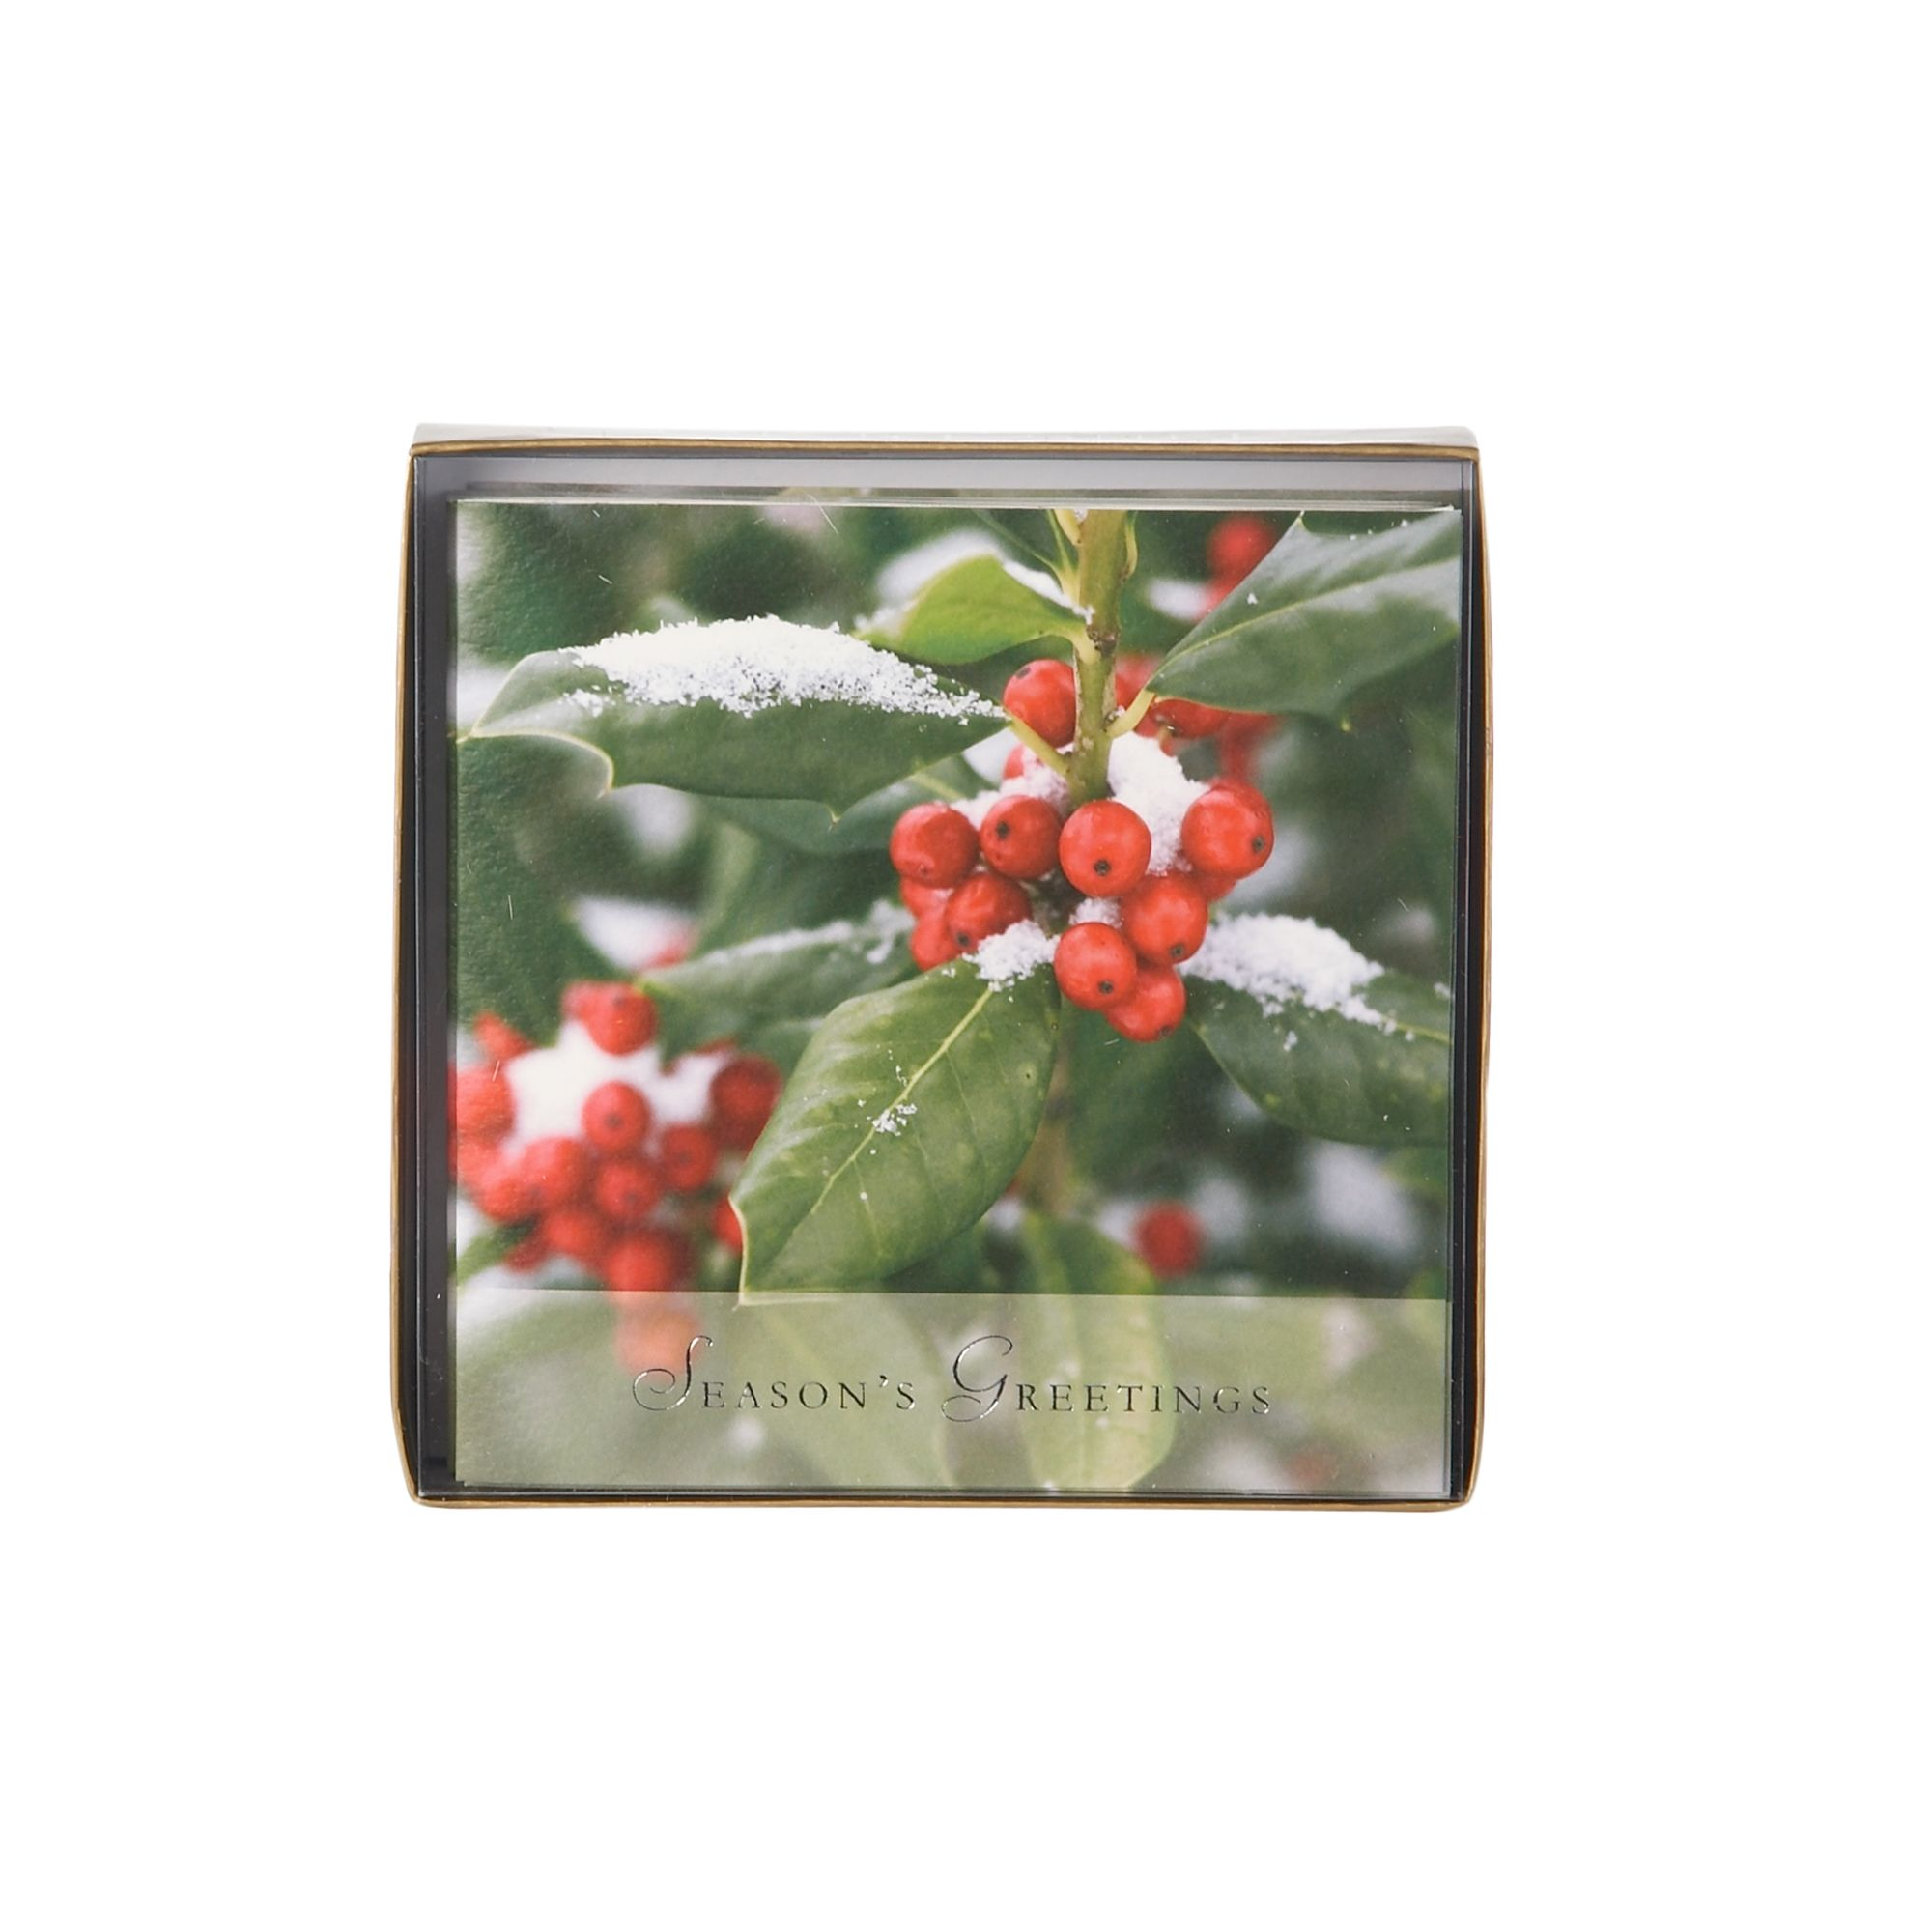 Ling Photographic holly Christmas cards